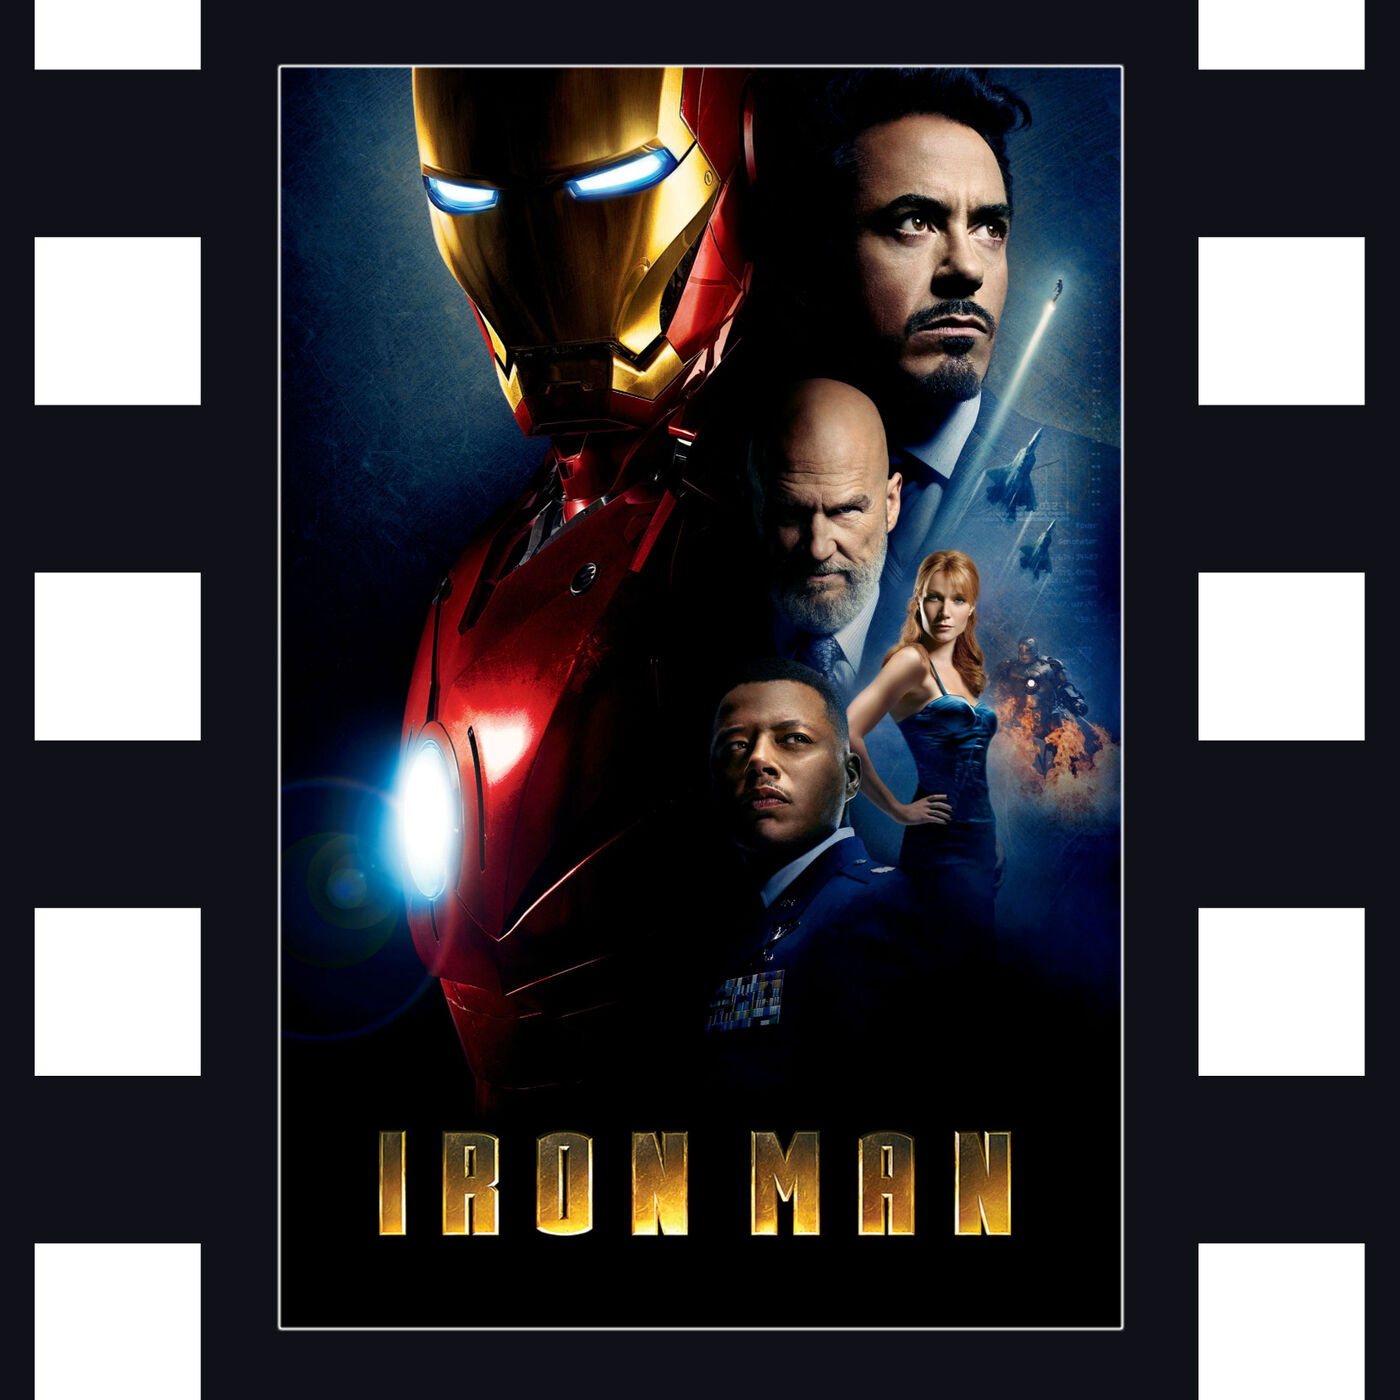 Iron Man - Revisiting an Old Friend with The Polymath Roundtable